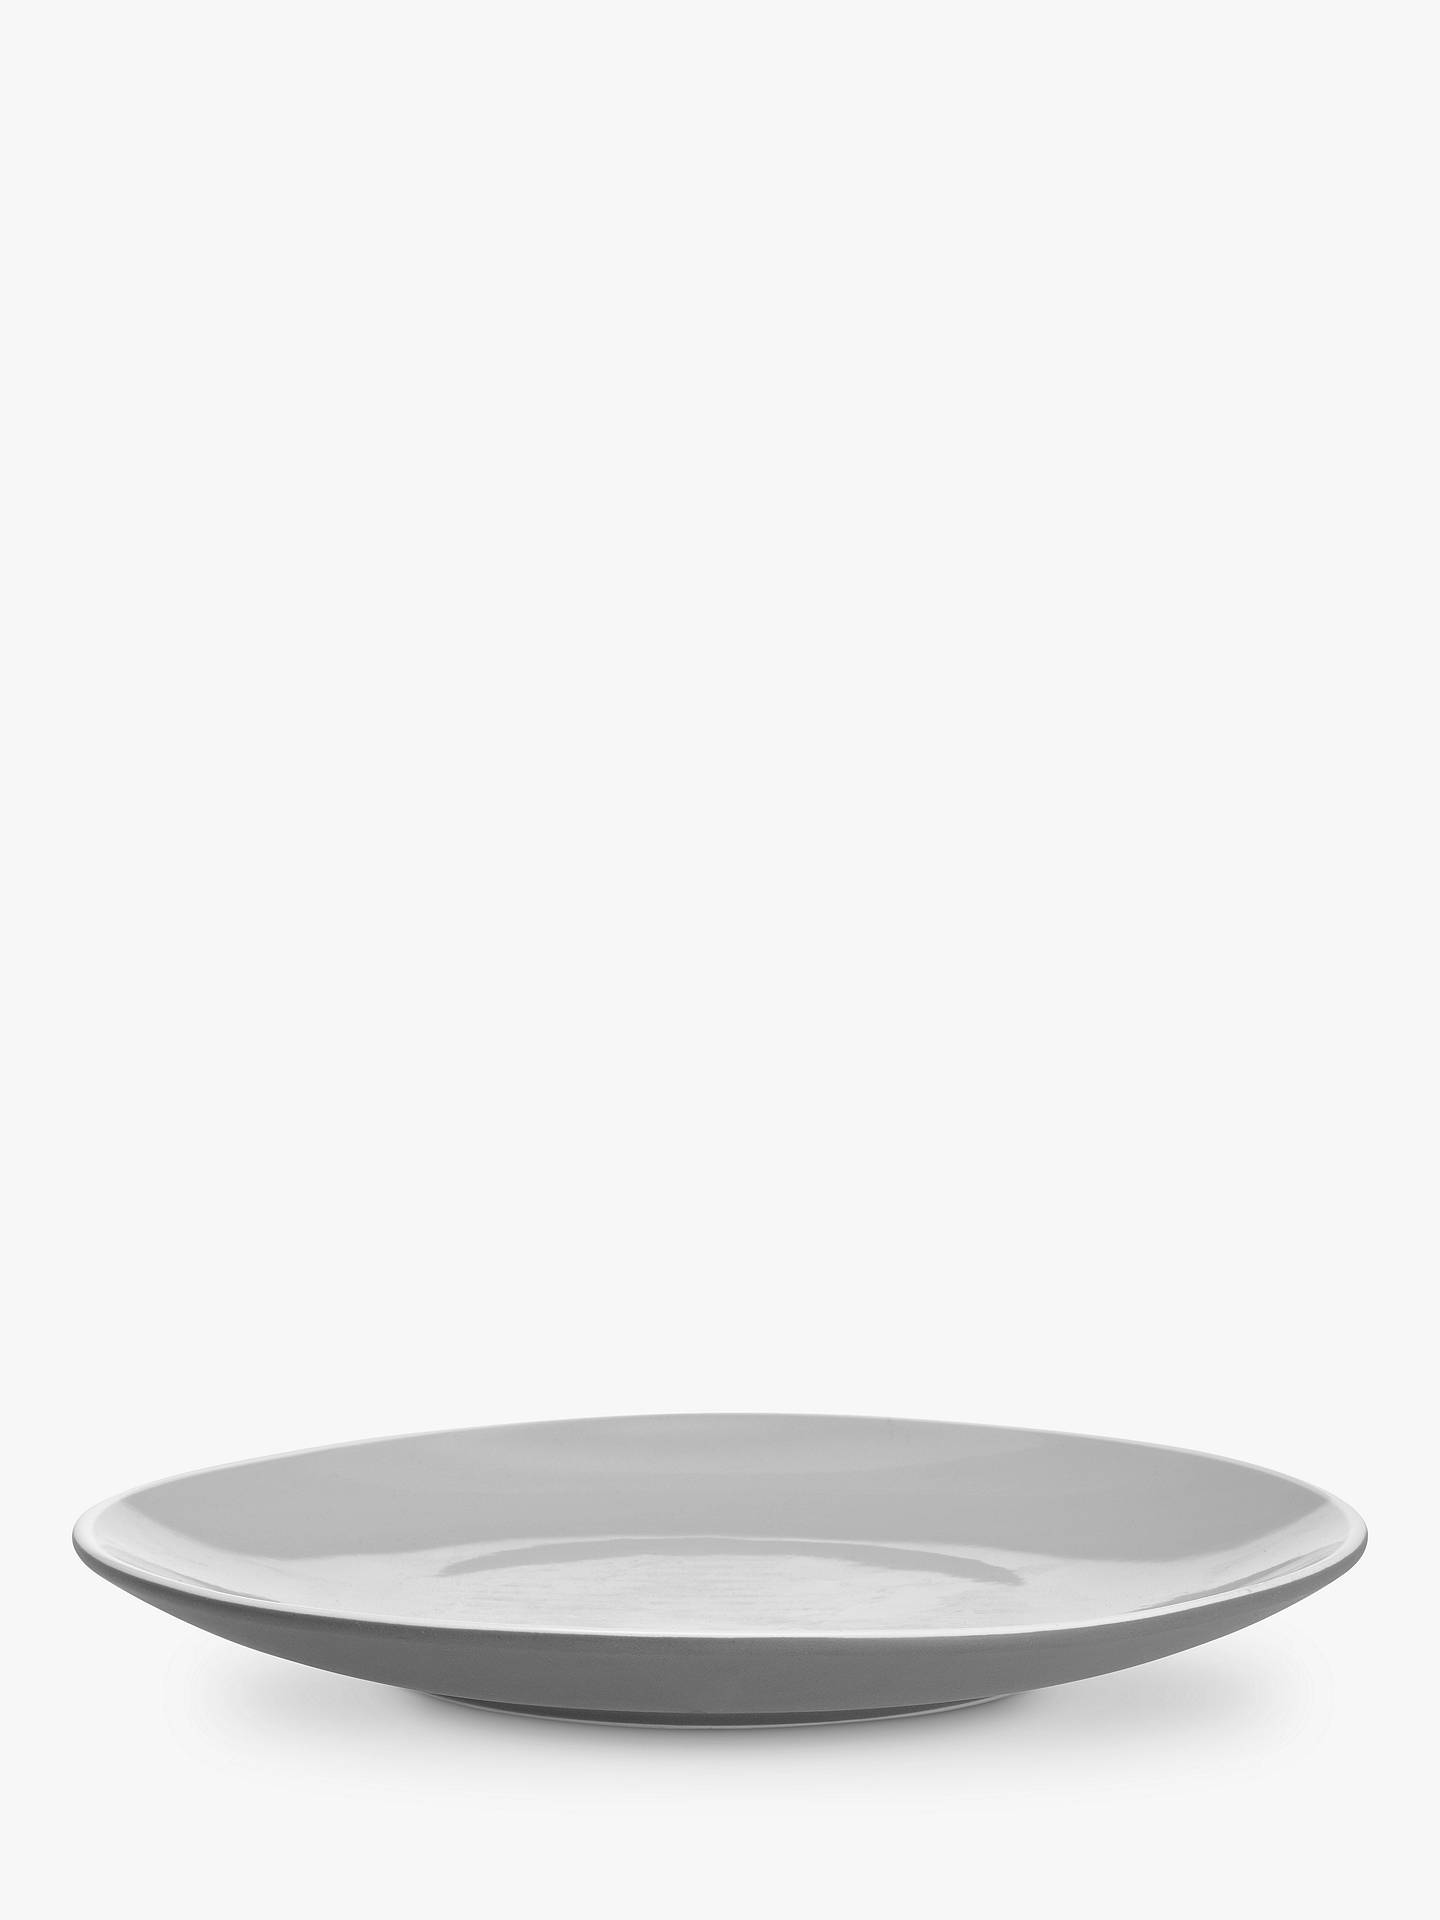 BuyJohn Lewis & Partners Puritan Breakfast Set, 12 Piece, Grey Online at johnlewis.com